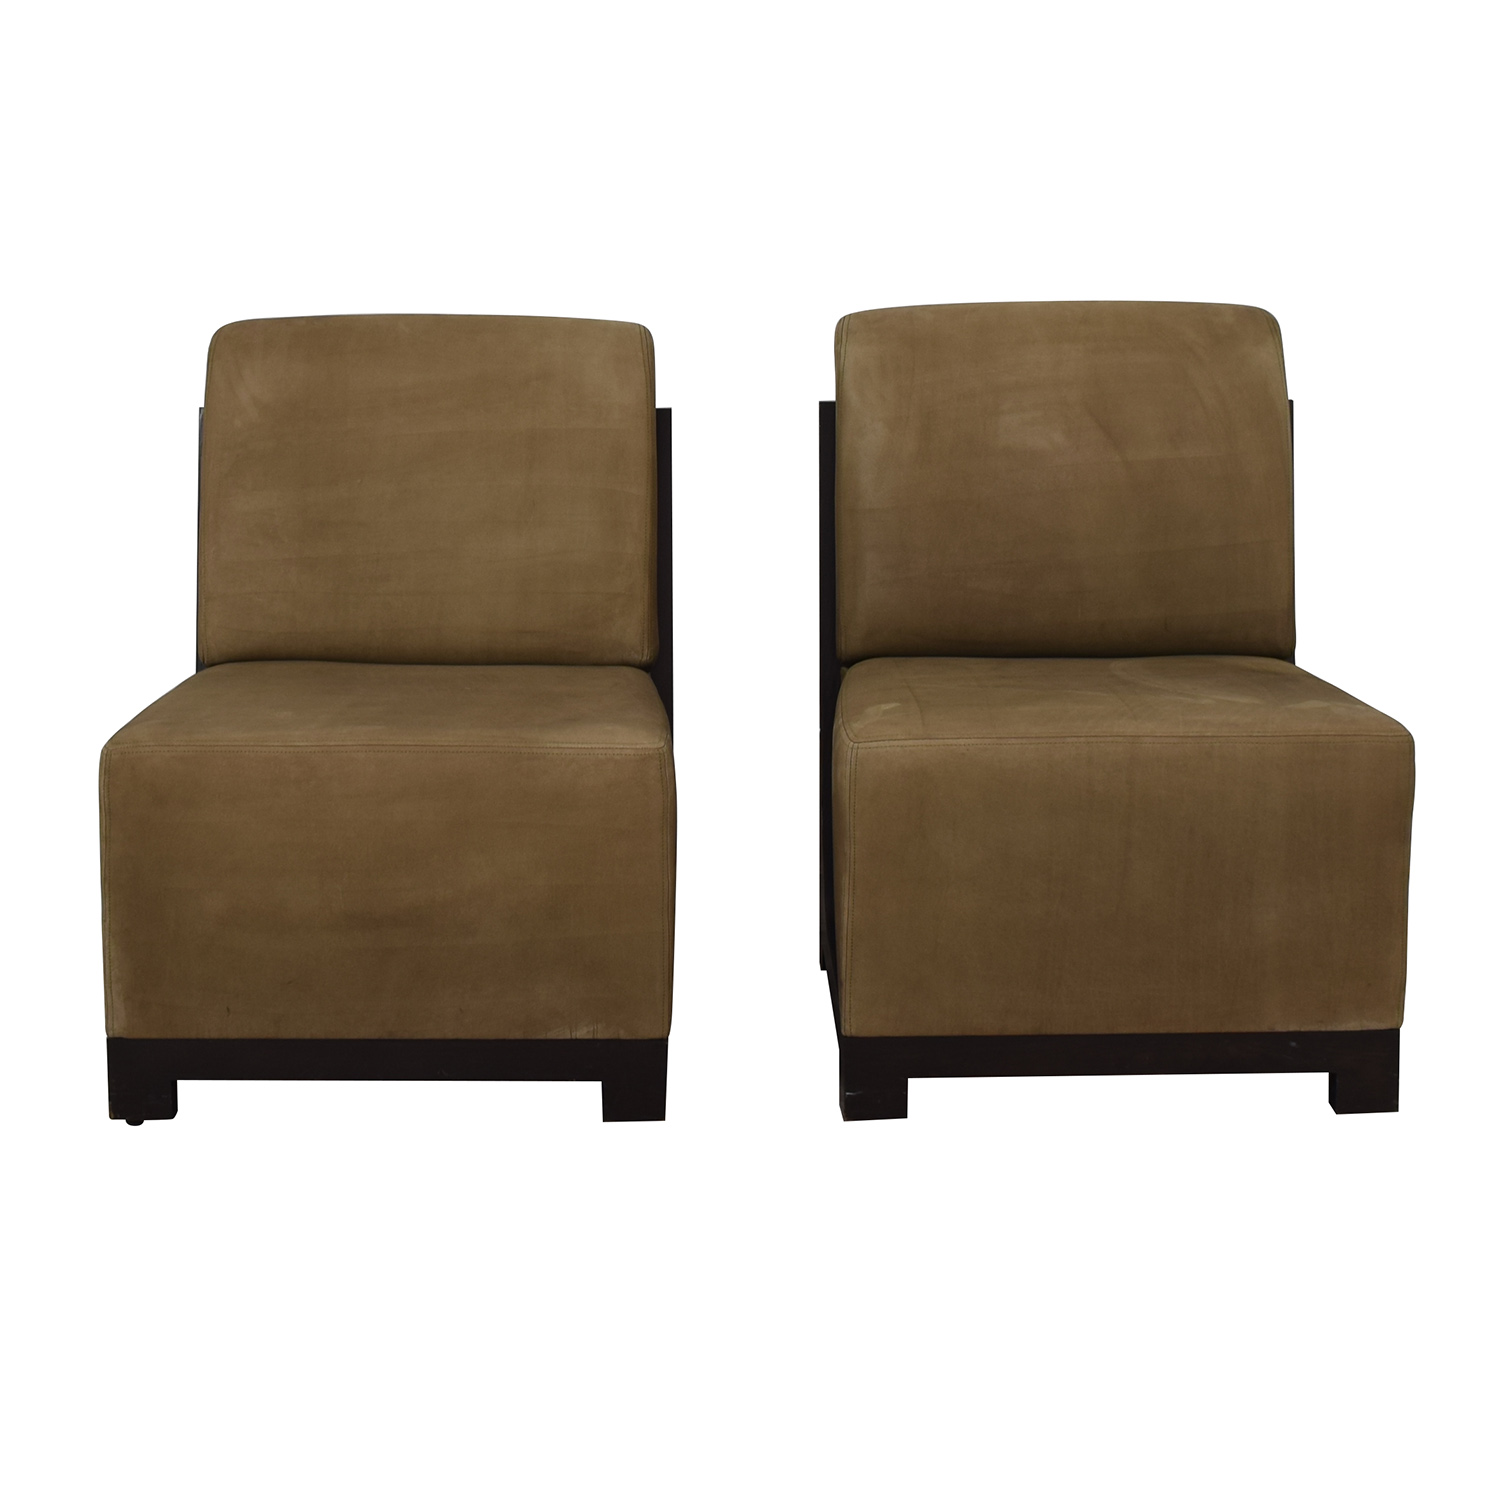 Furniture Masters Furniture Masters Tan Accent Chairs Accent Chairs